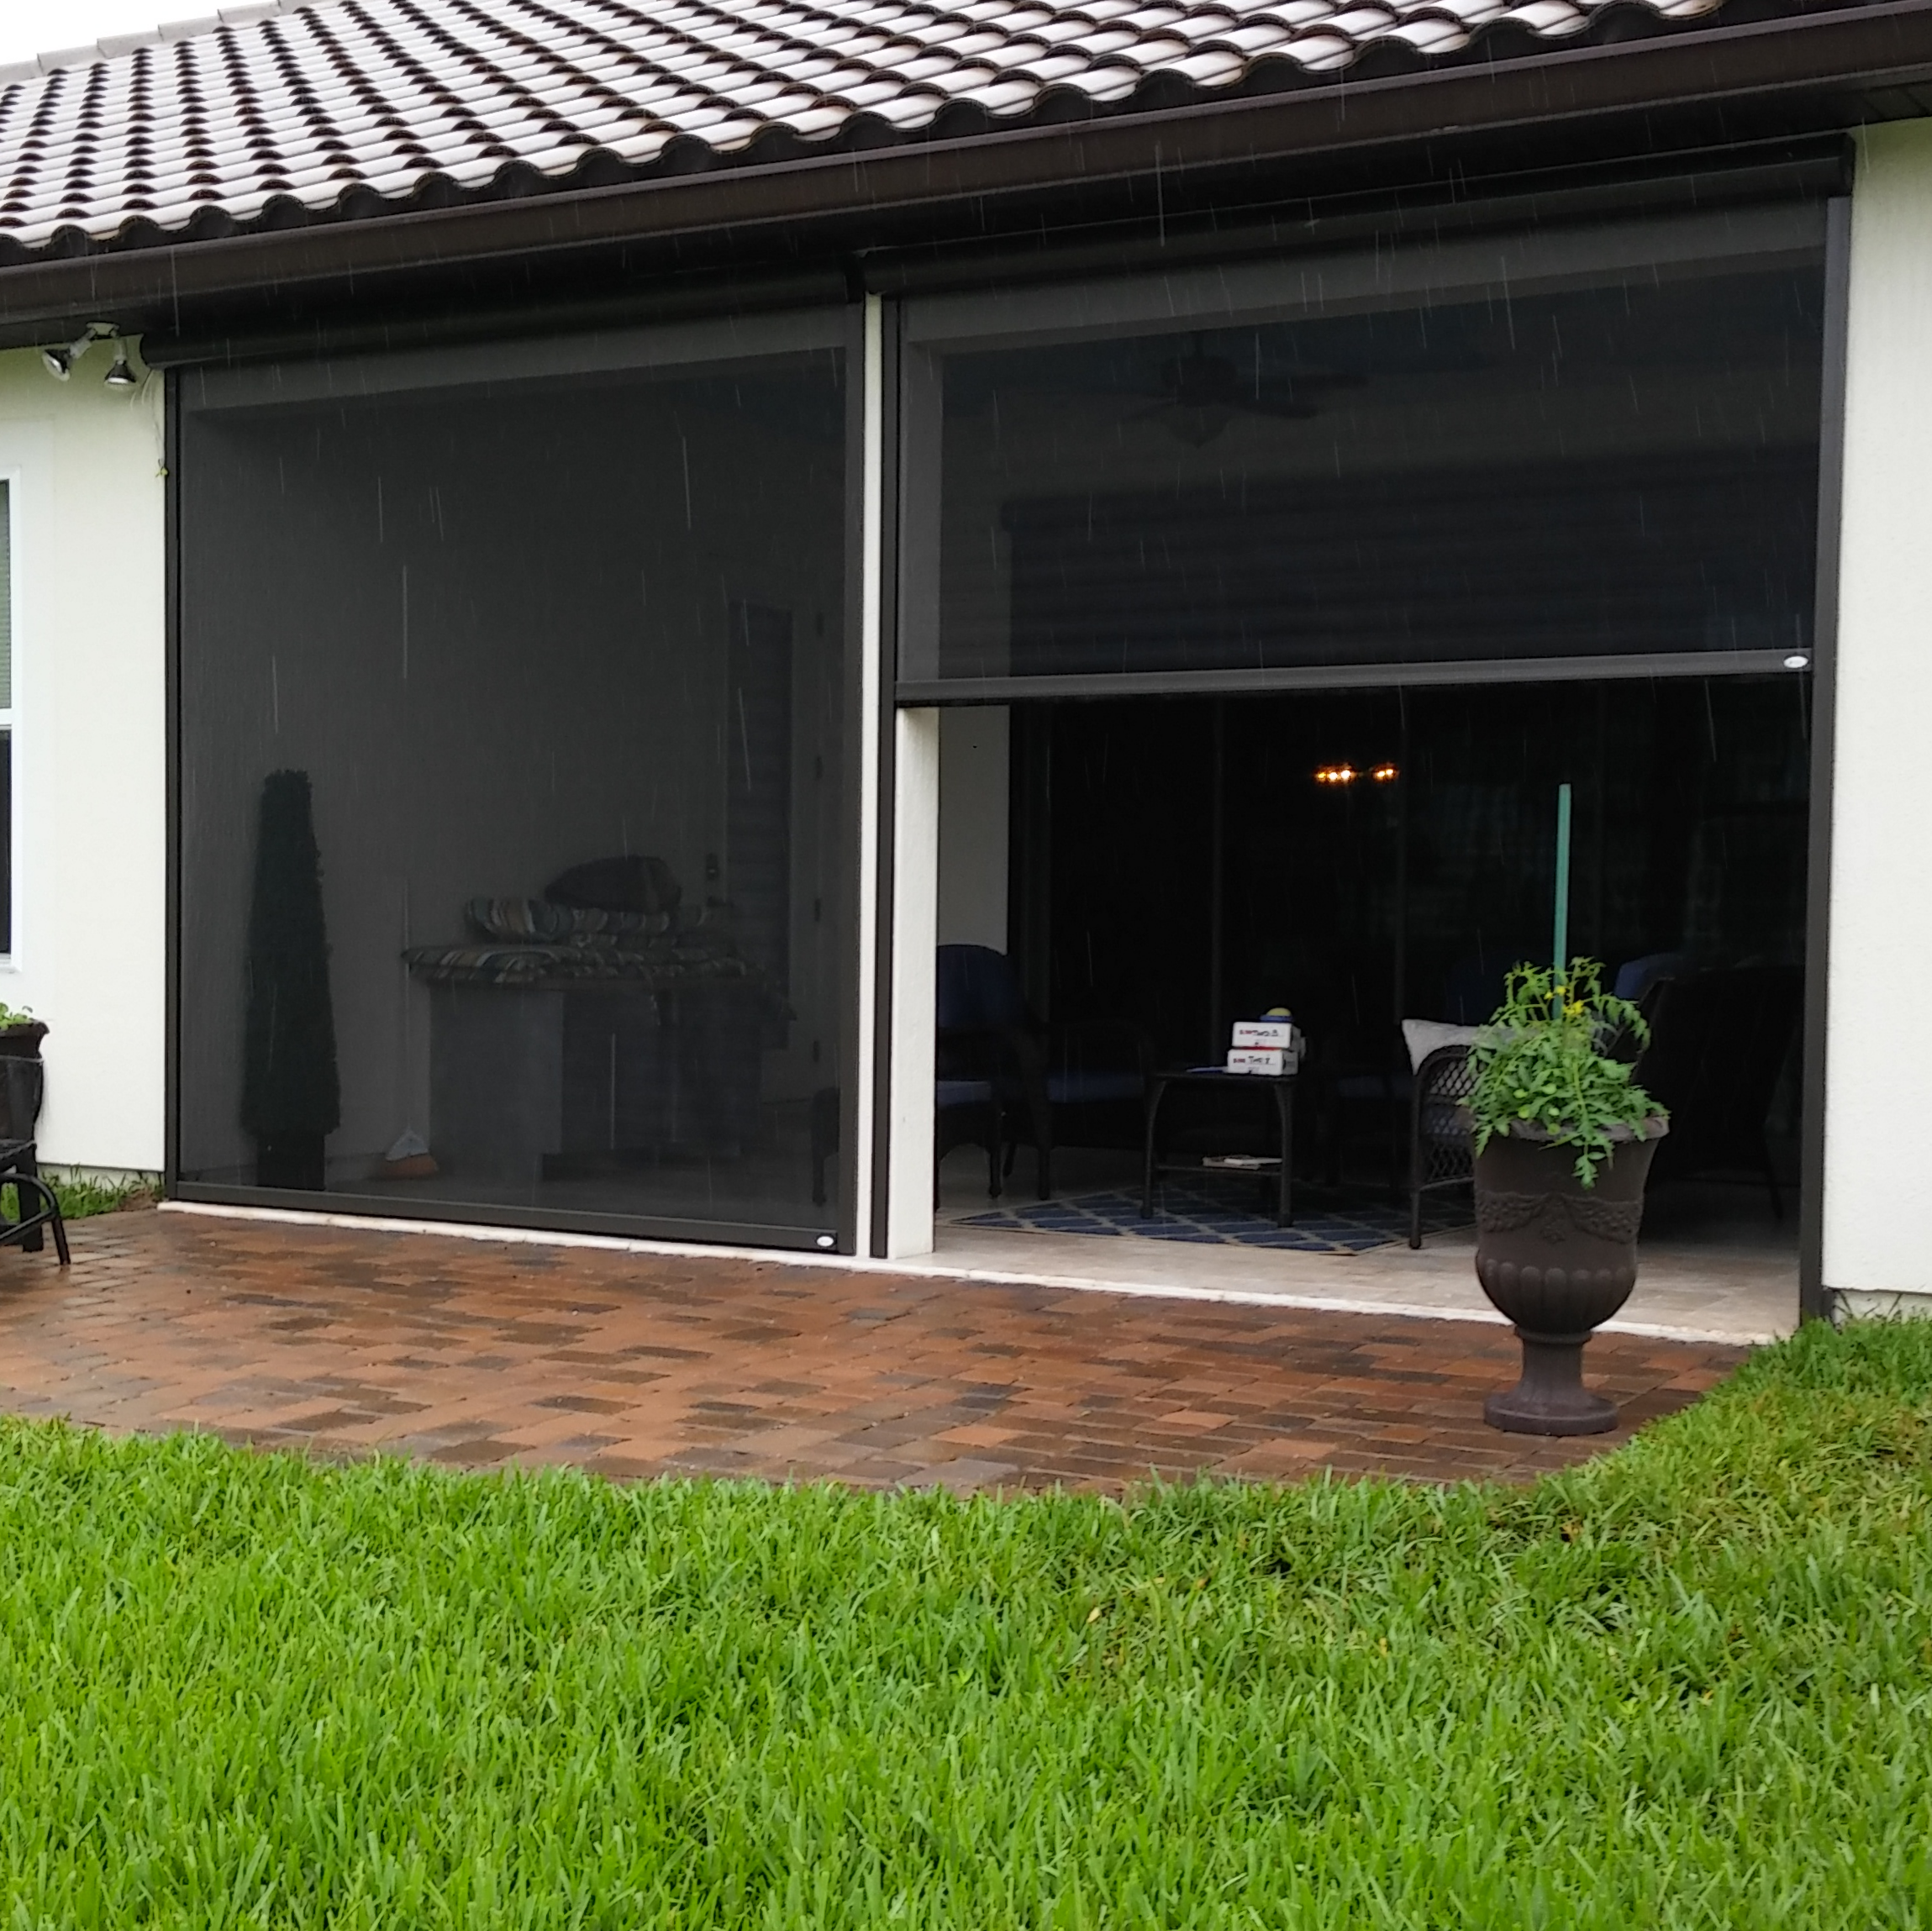 Mosquito Mafia Screen Services Can Provide Motorized And Manual Retractable  Screens, As Well As Fixed Rescreening Services For Your Garage, Entryways,  ...